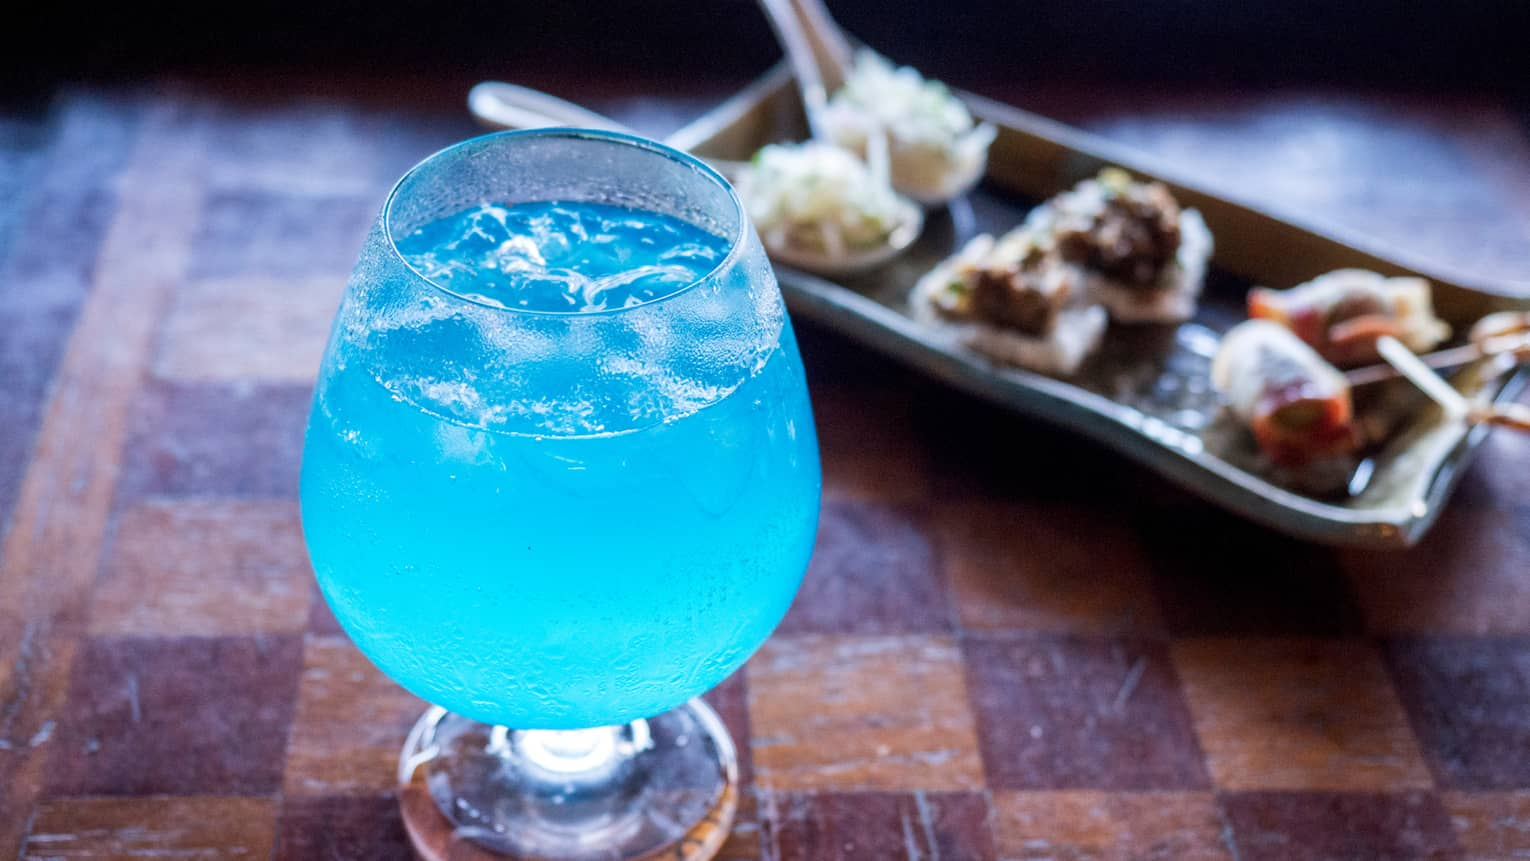 Bright blue cocktail in glass beside platter with small appetizers